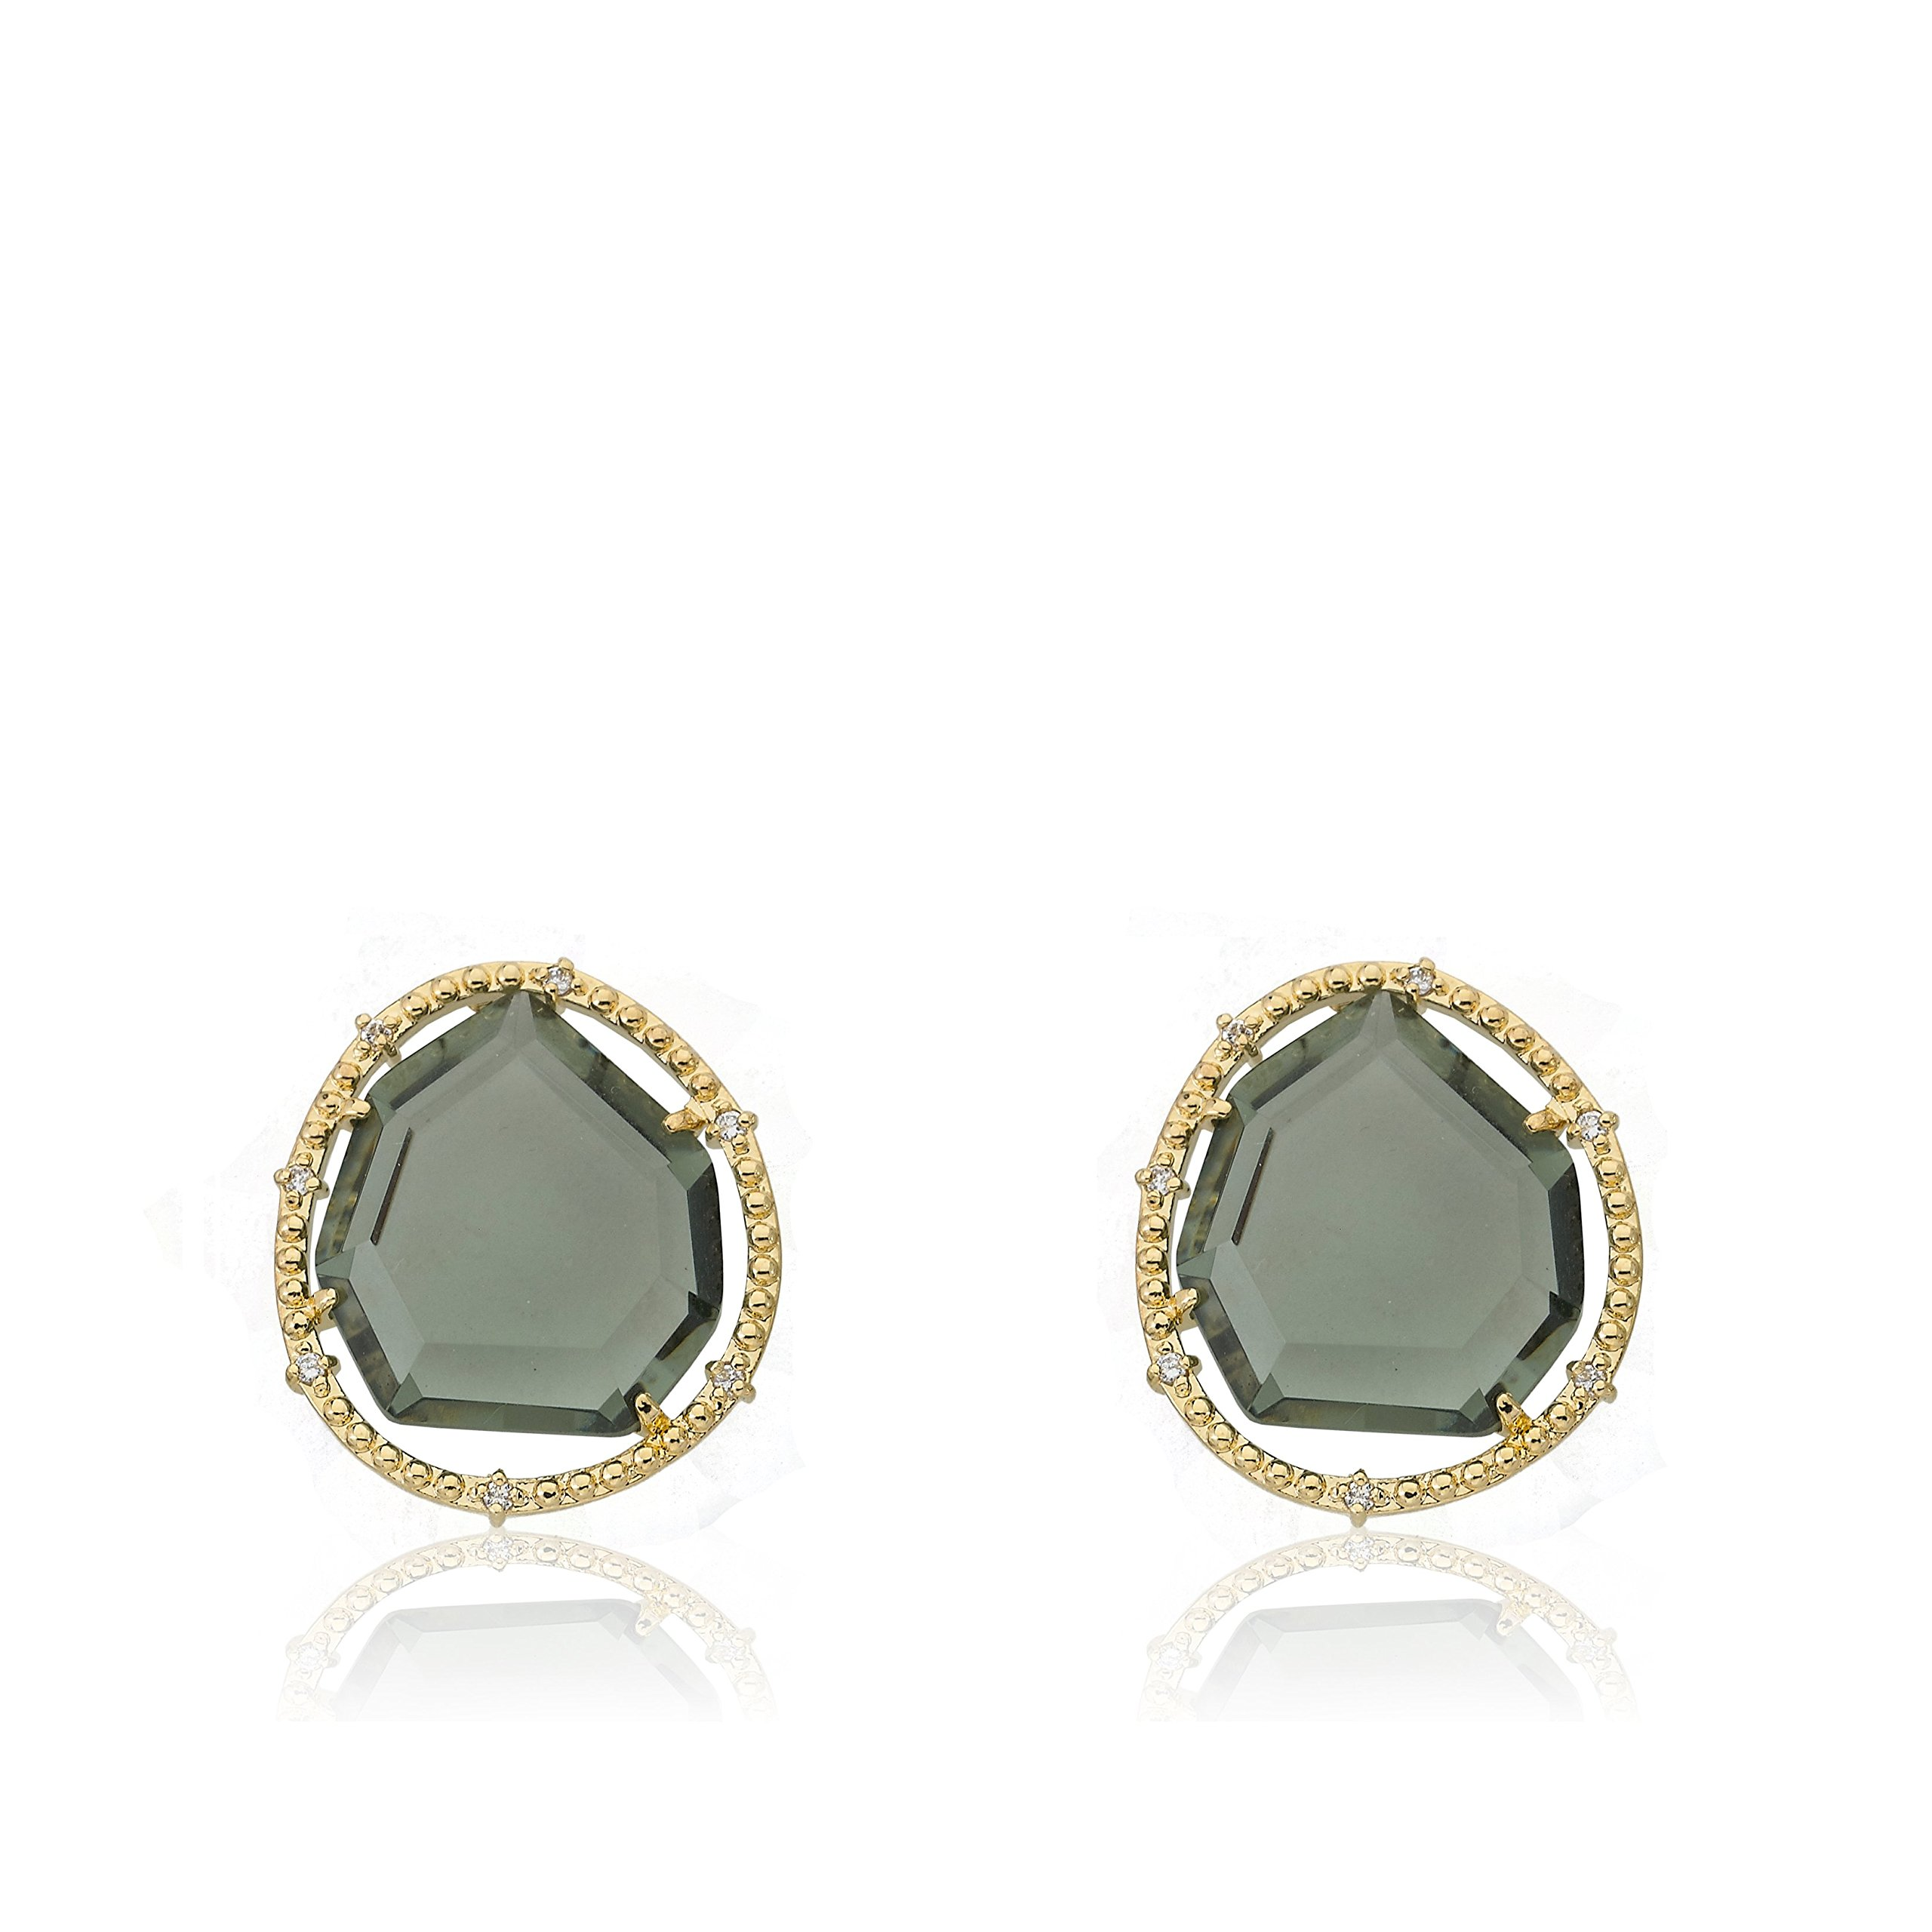 Riccova Sliced Glass 14k Gold-Plated Black Sliced Glass Stud Earring Brass by Riccova